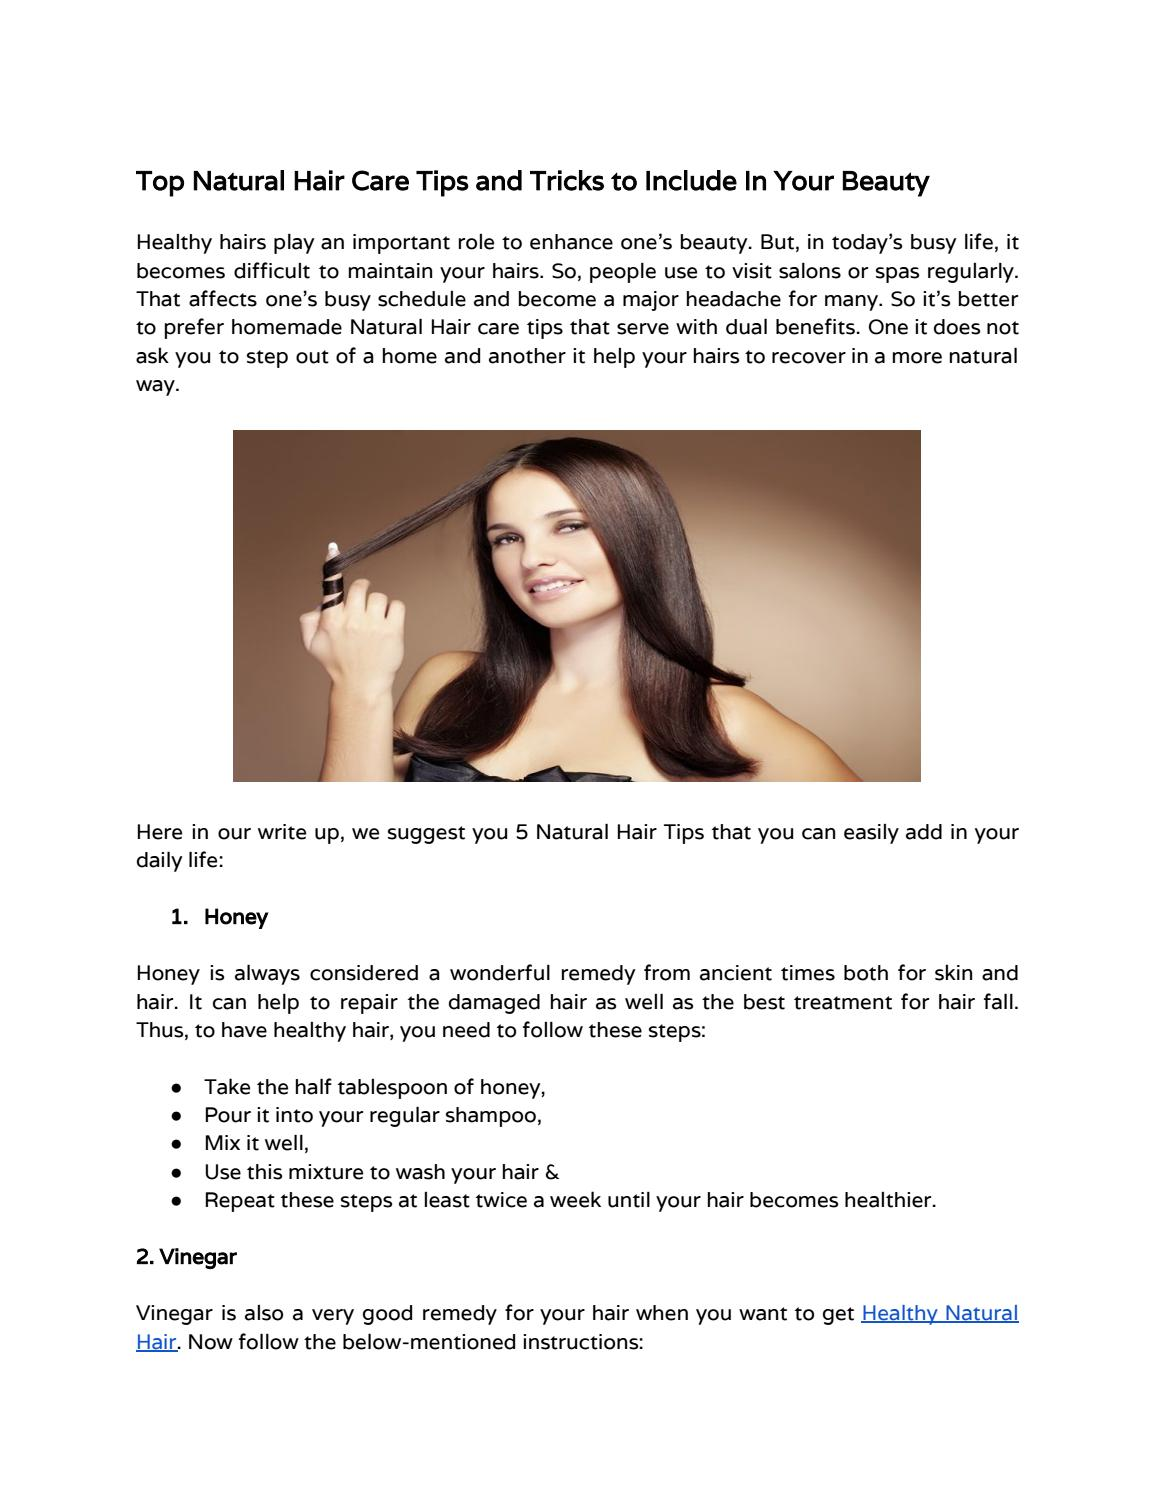 Top Natural Hair Care Tips In Your Beauty By Sheetal Goswami Issuu